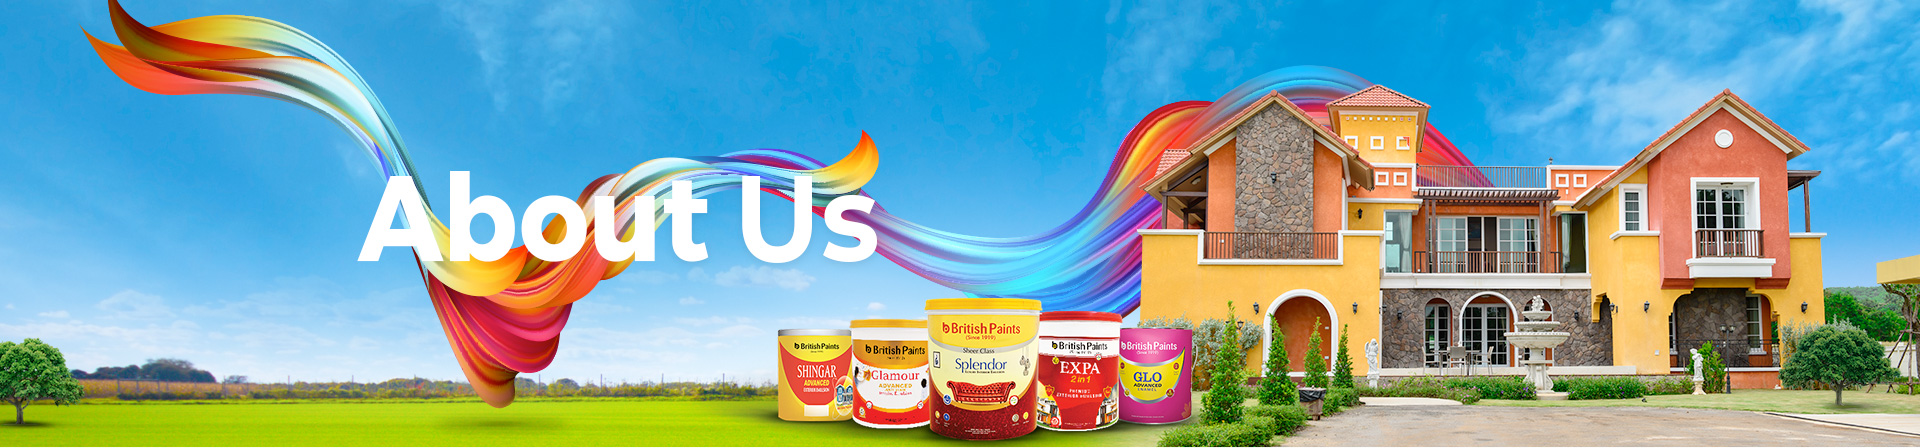 Paint and Colour Company, Paint Manufacturers in India | British Paint